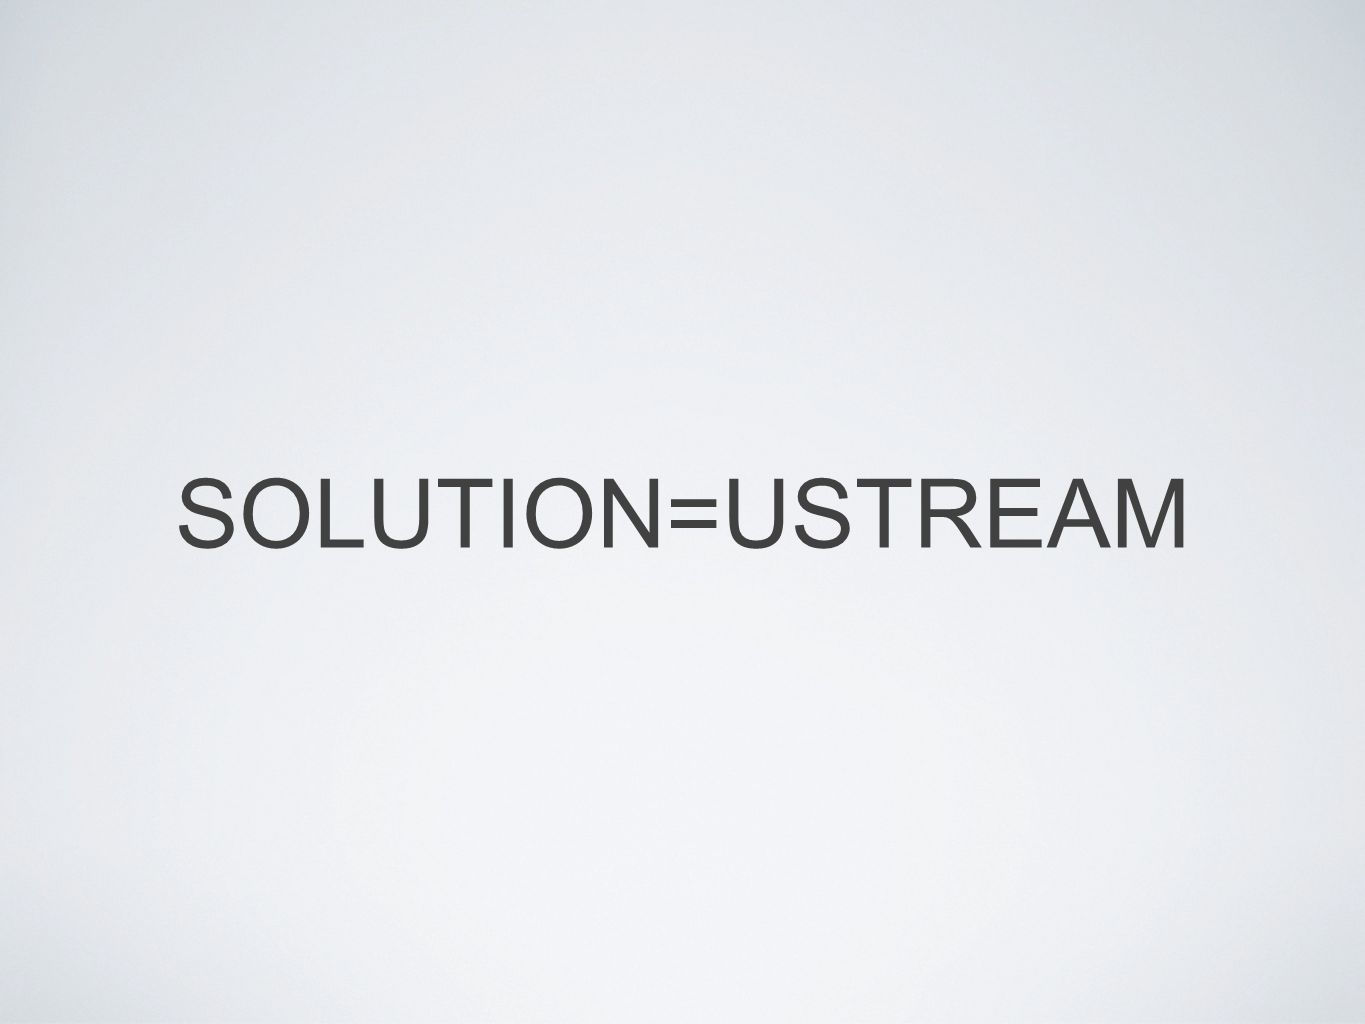 SOLUTION=USTREAM